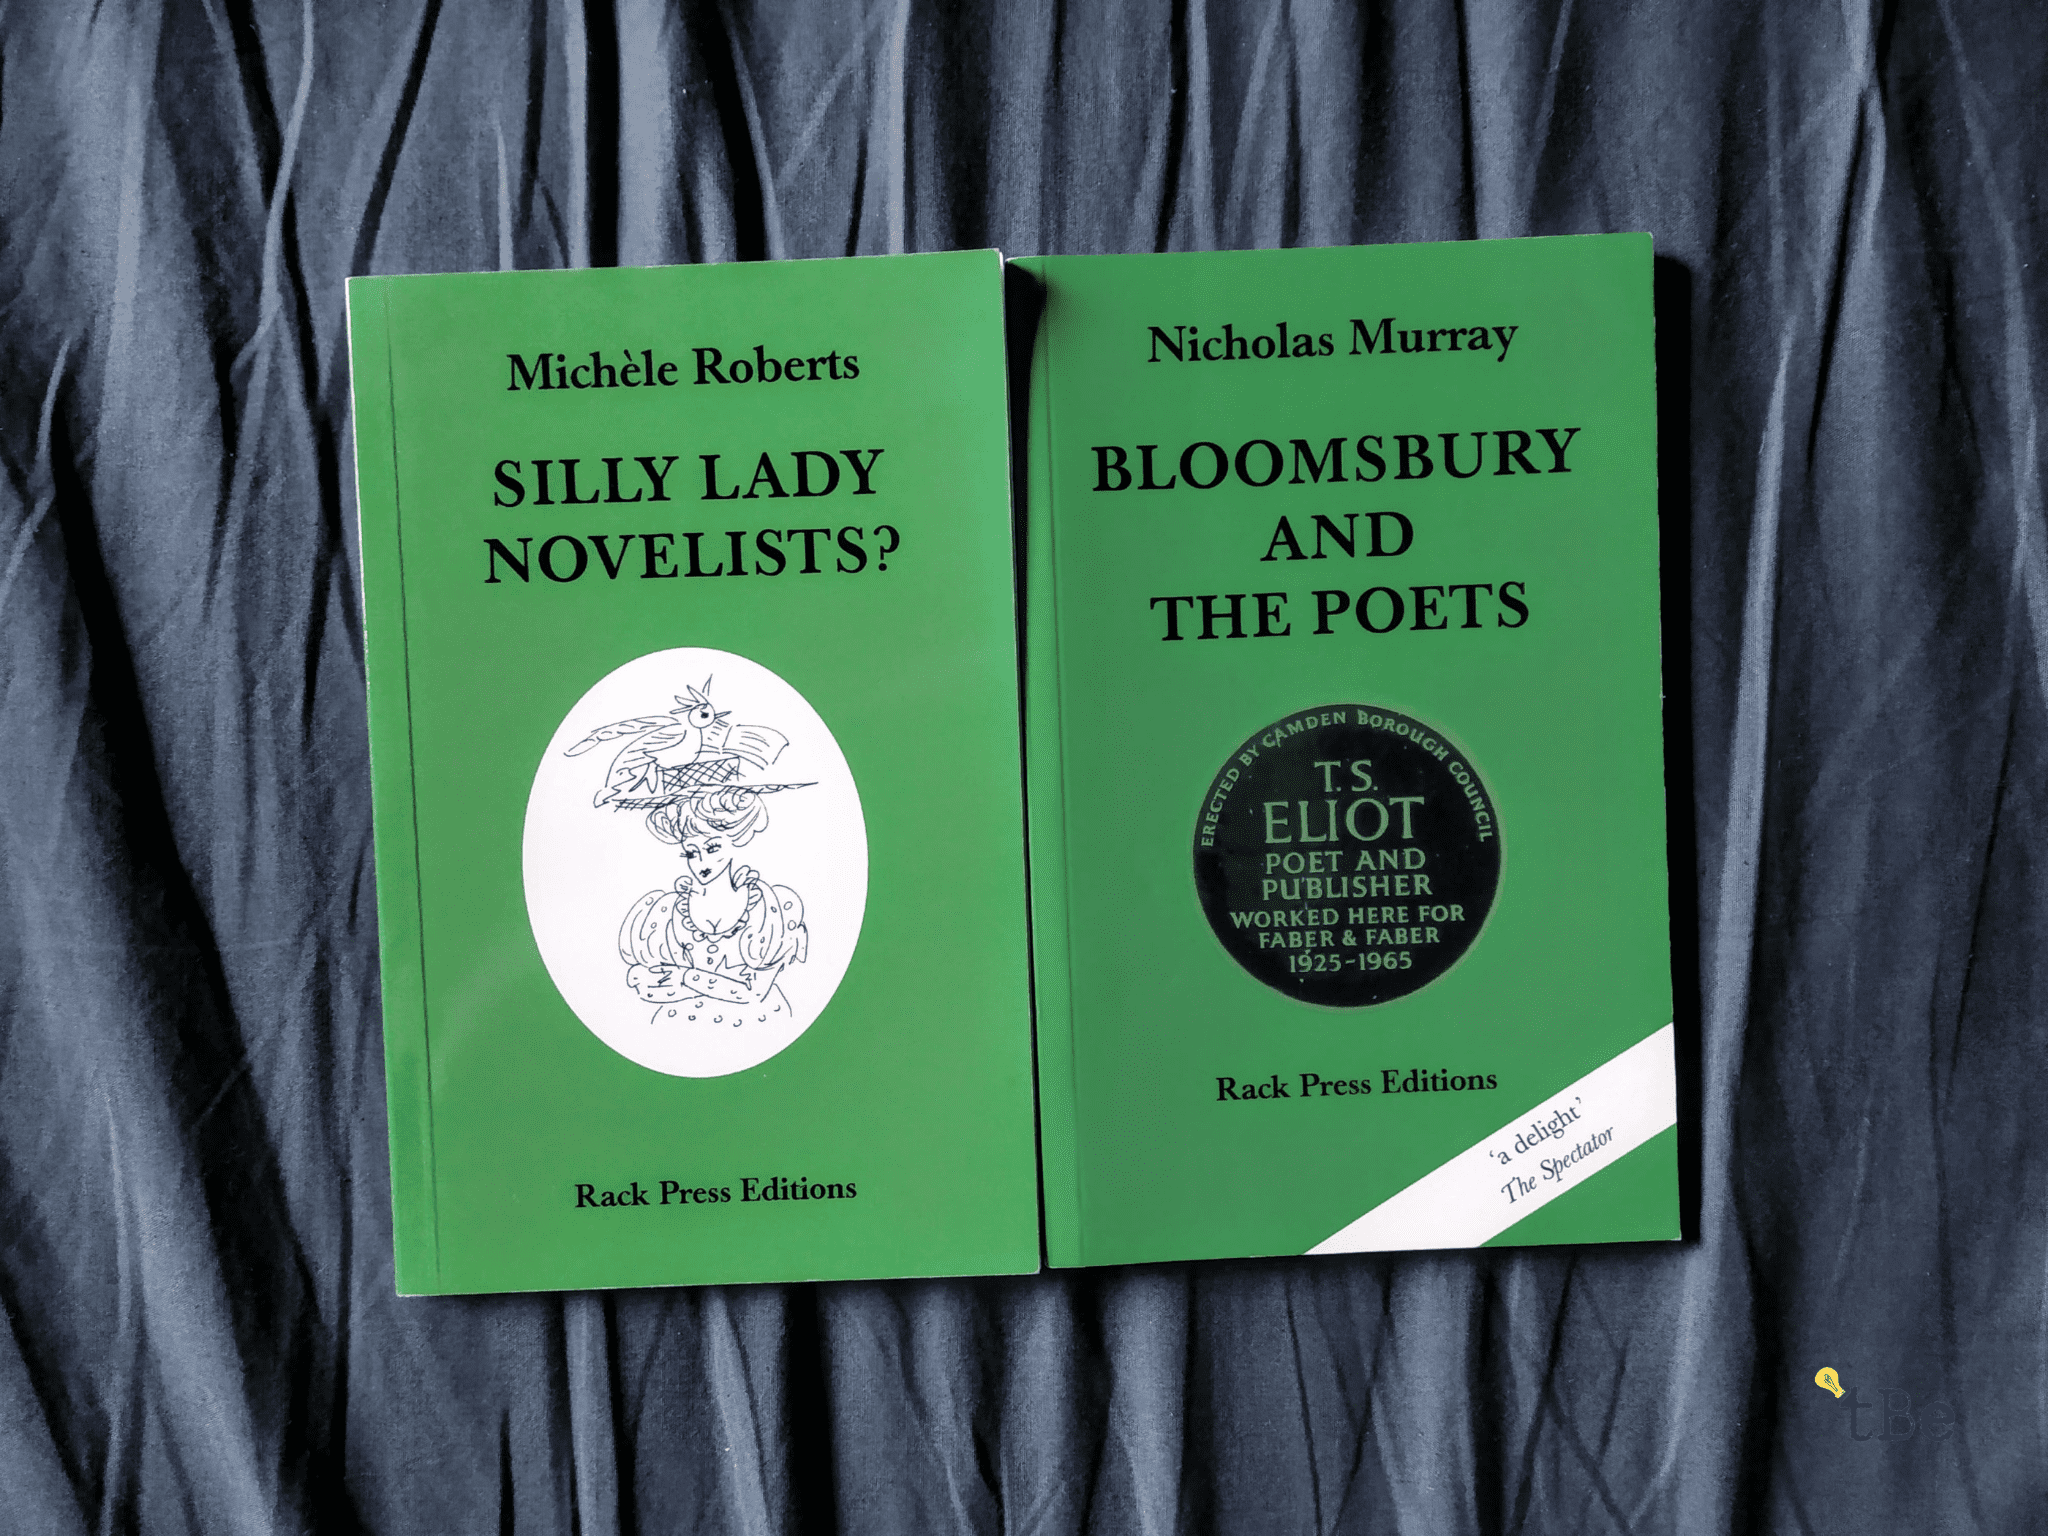 Bloomsbury and the poets di Nicholas Murray & Silly lady novelists? di Michèle Roberts immagine principale